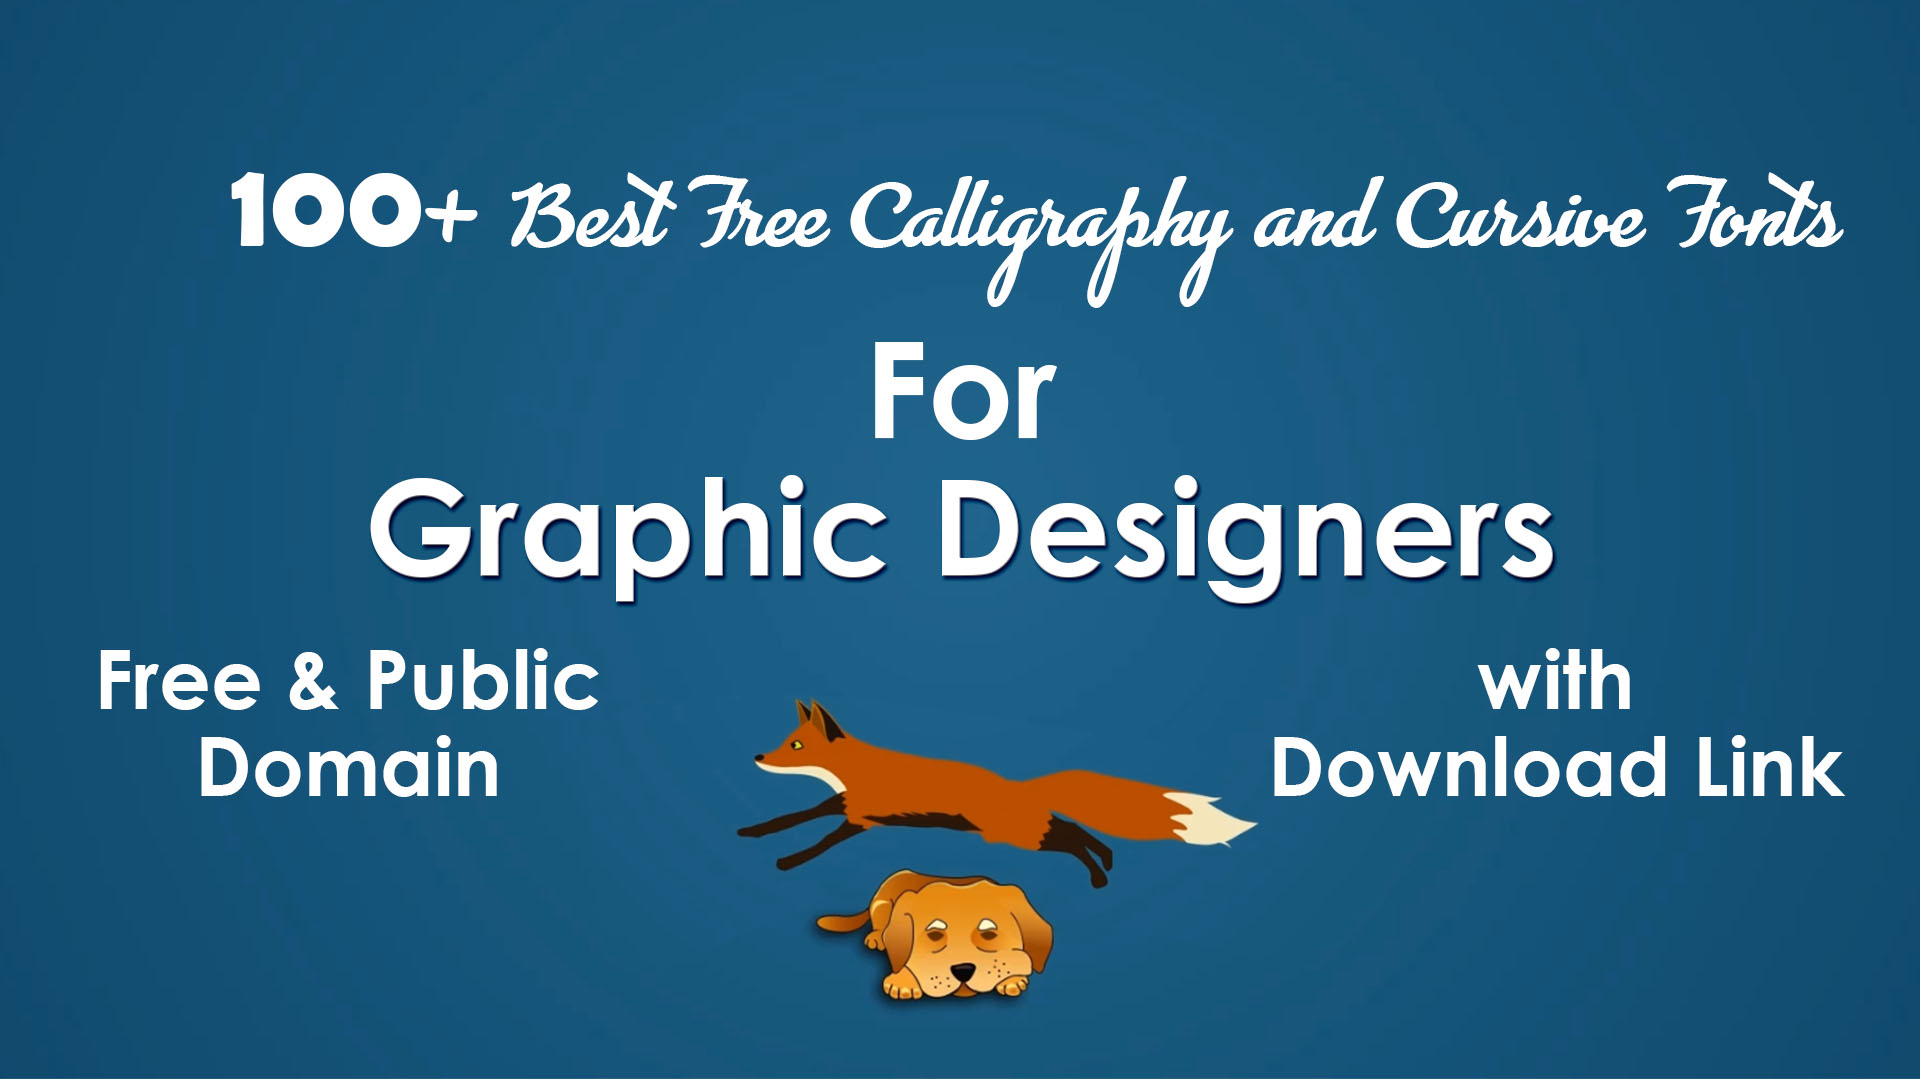 List Of 100 Best Free Public Domain Calligraphy Script And Cursive Fonts For Graphic Designers